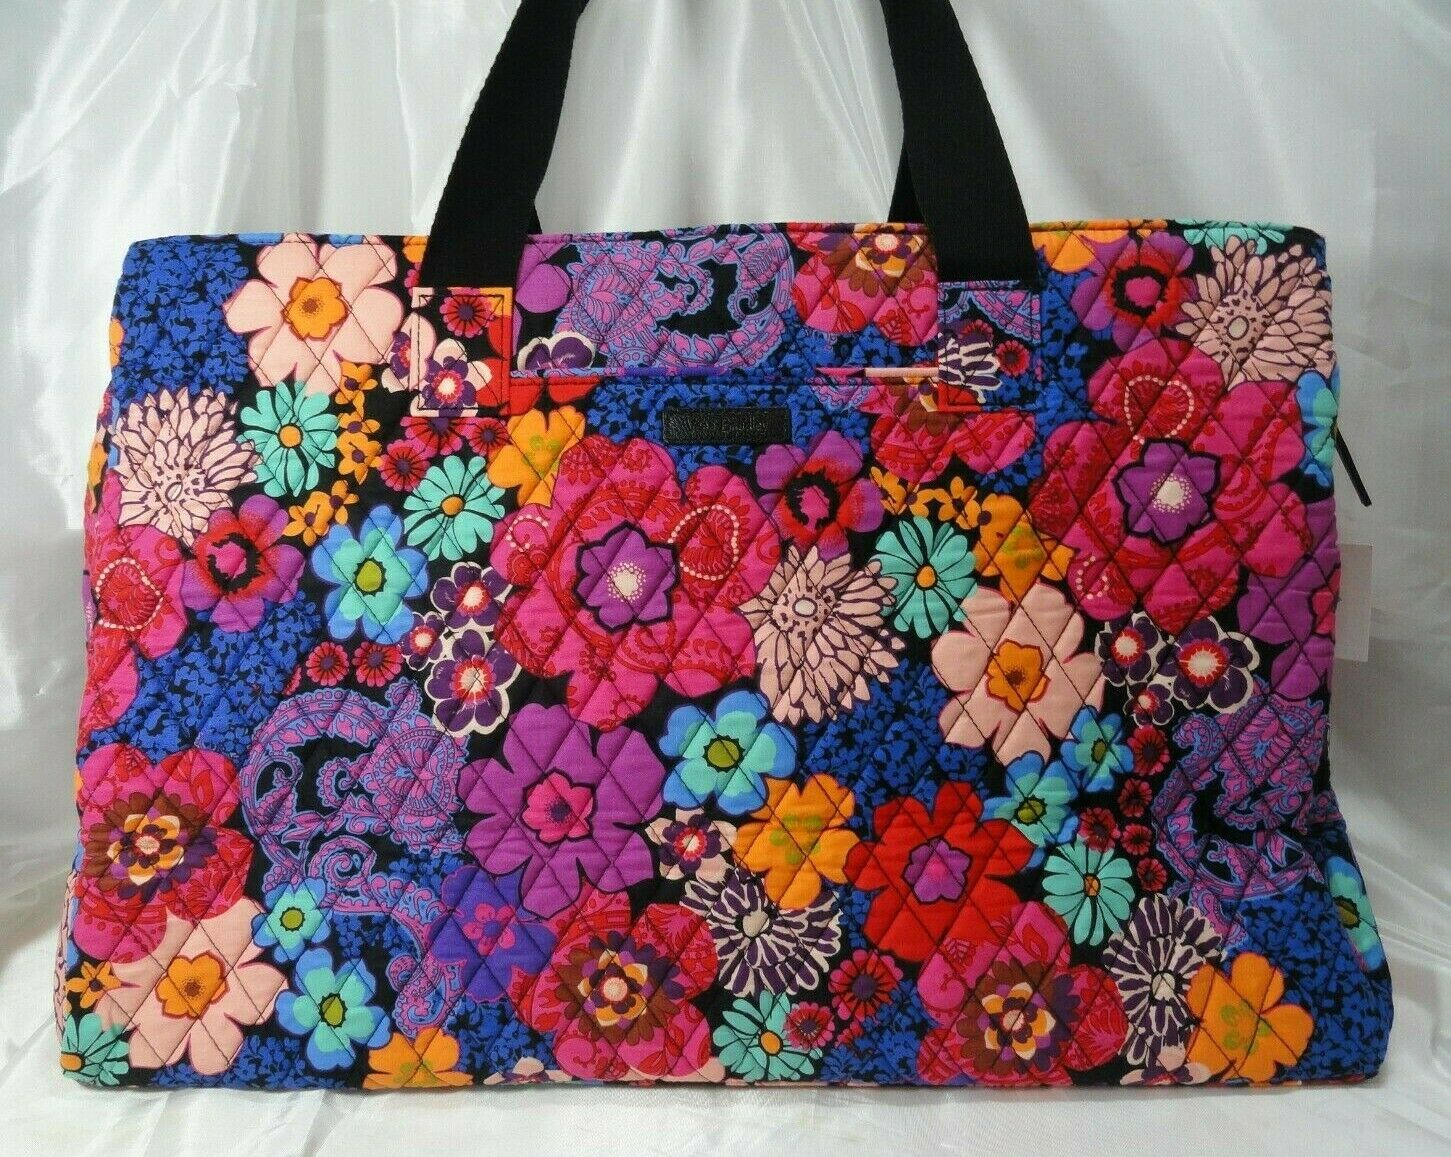 s triple compartment travel bag in floral